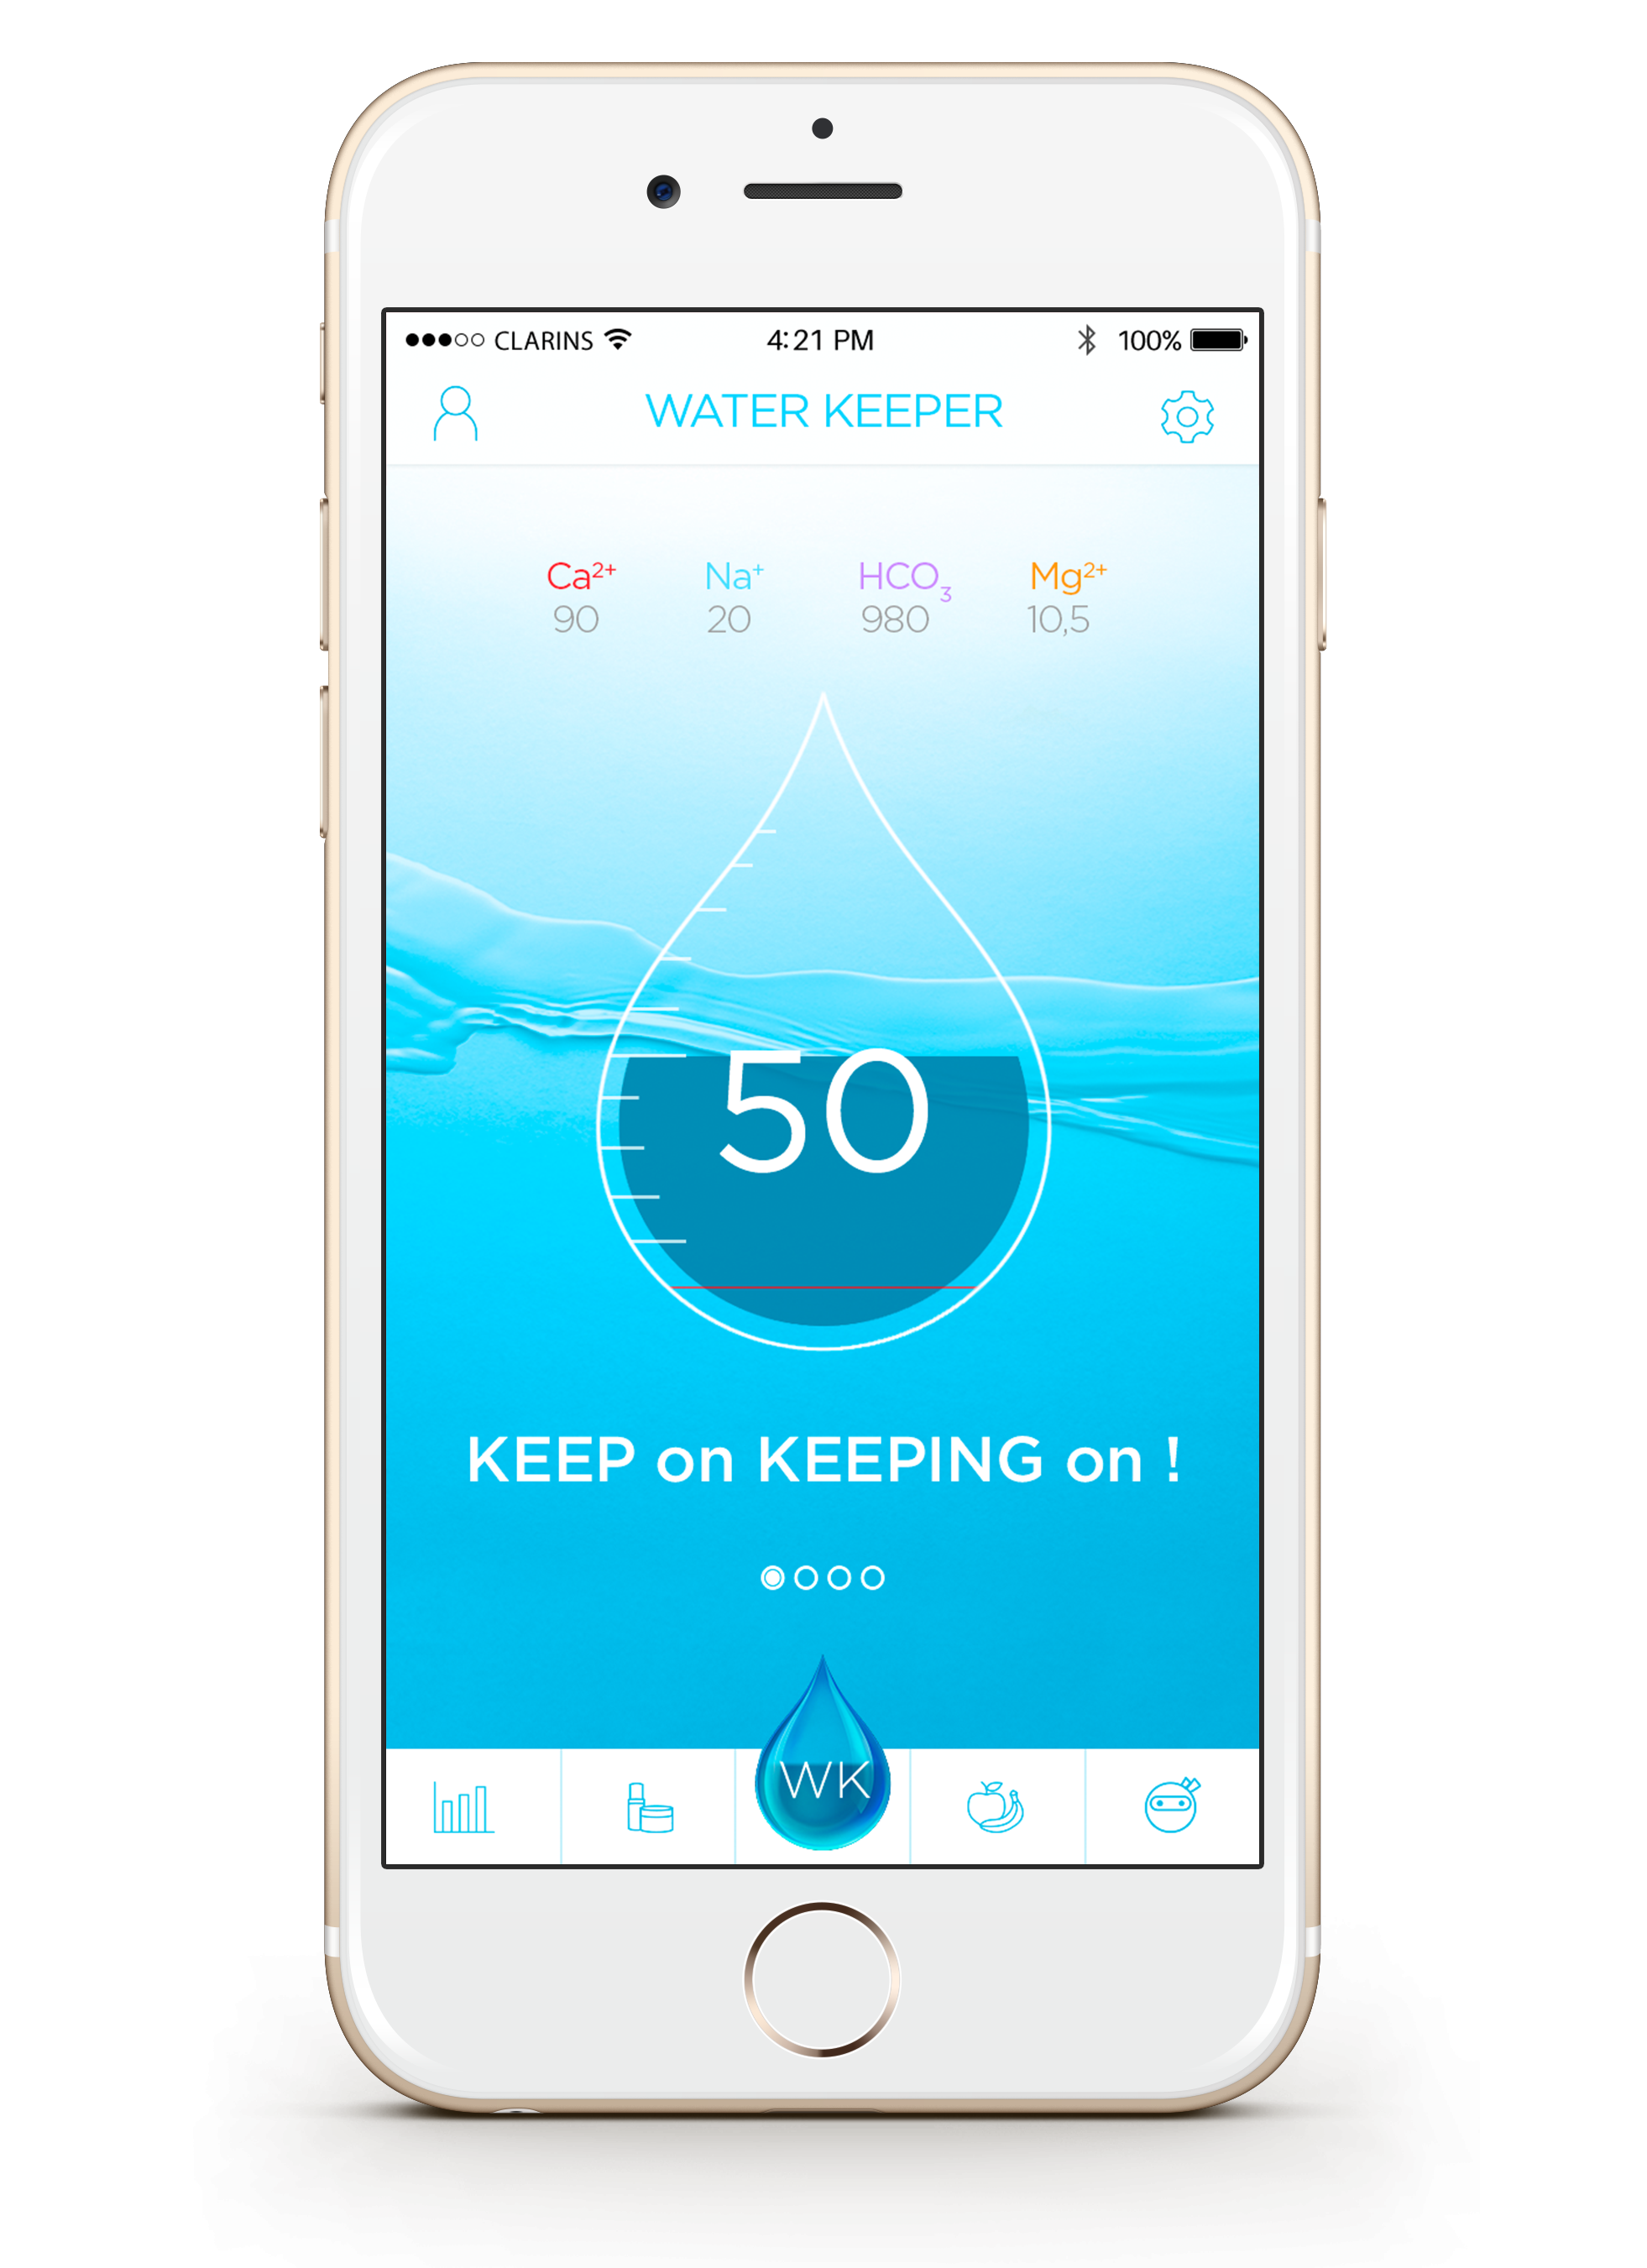 iphone clarins water keeper2